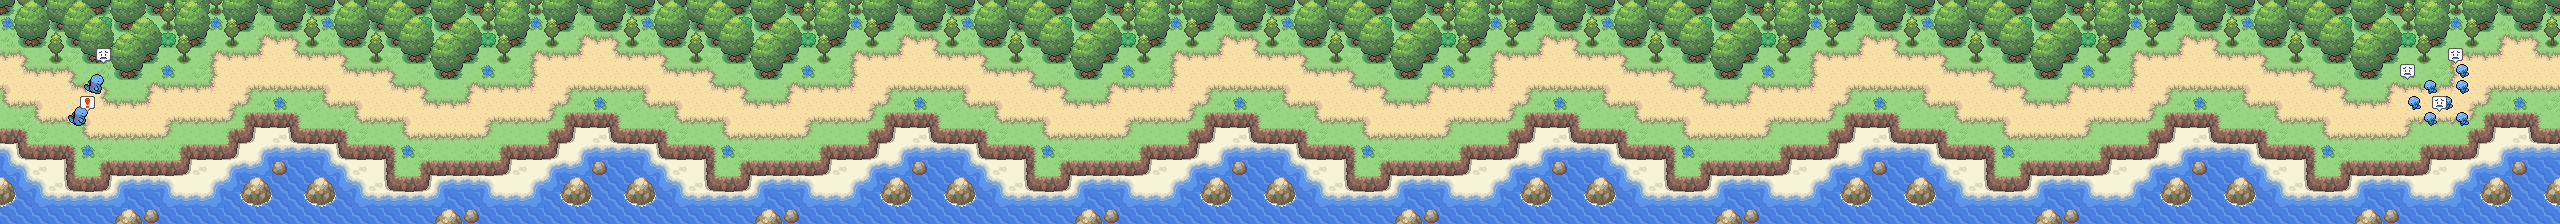 Pokémon-Map: Haters gonna hate